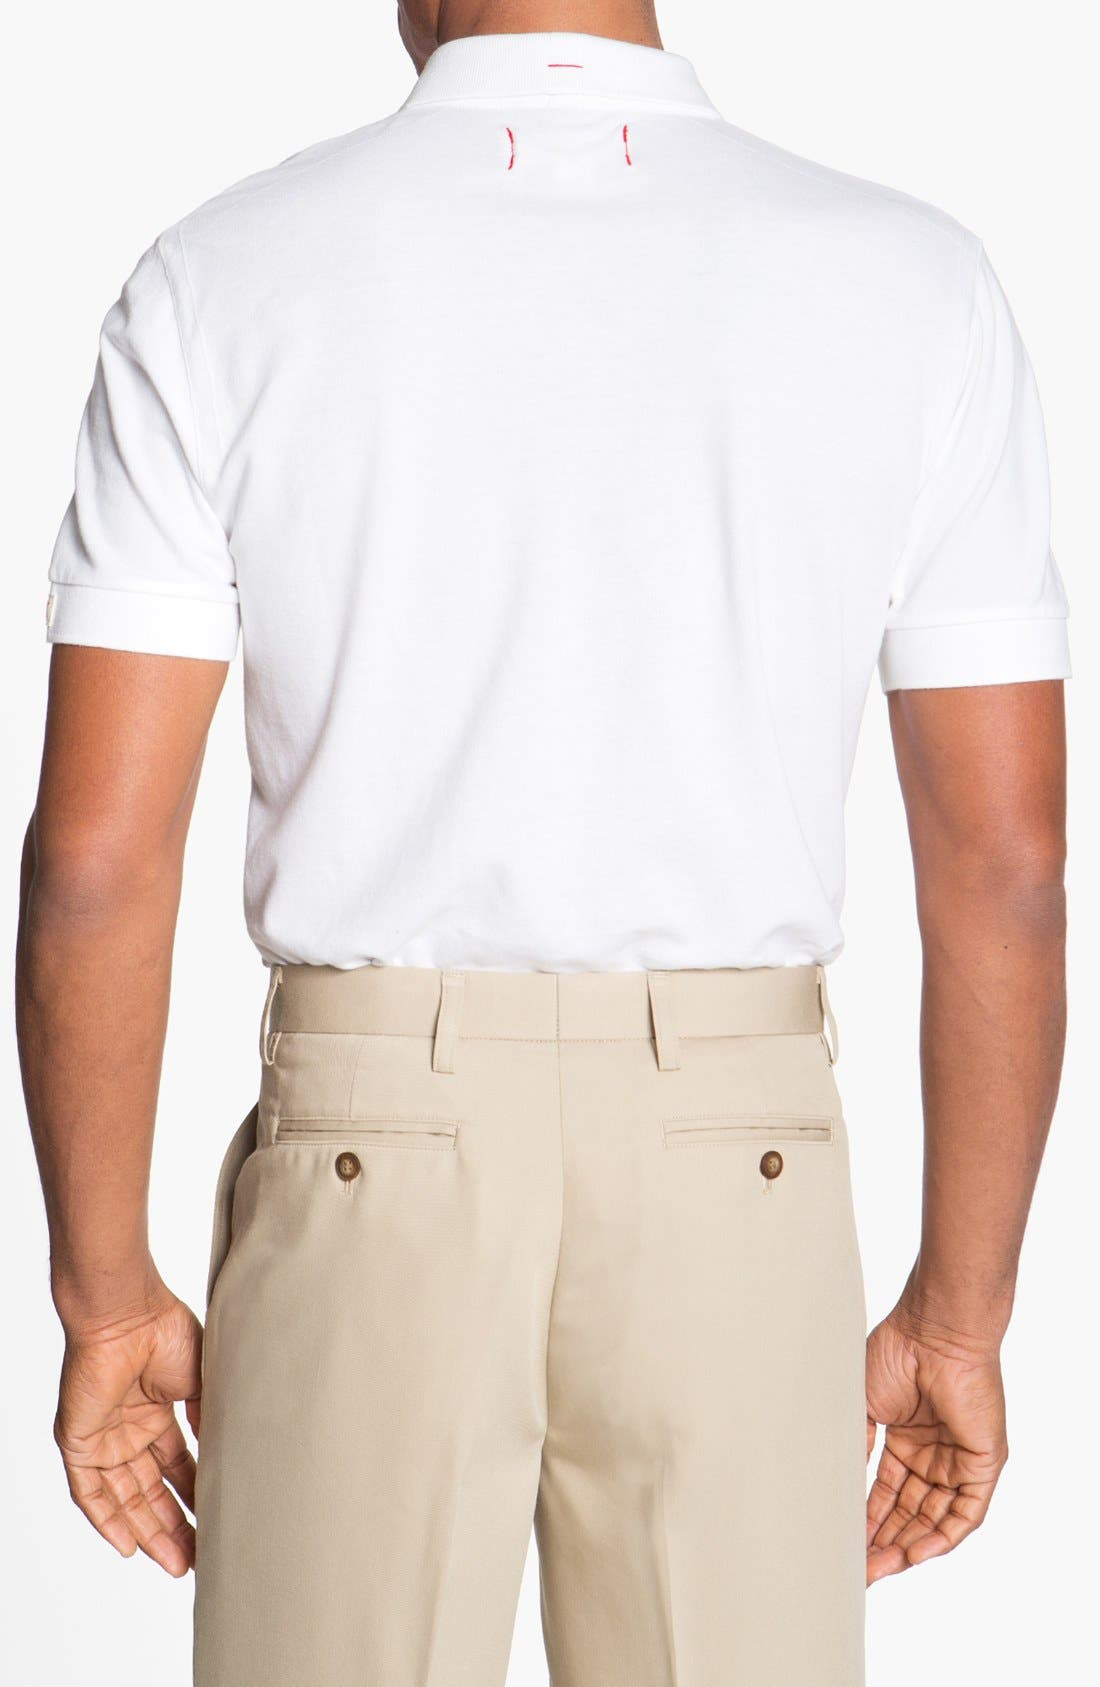 Alternate Image 2  - Cutter & Buck 'Market' Polo (Big & Tall) (Online Only)